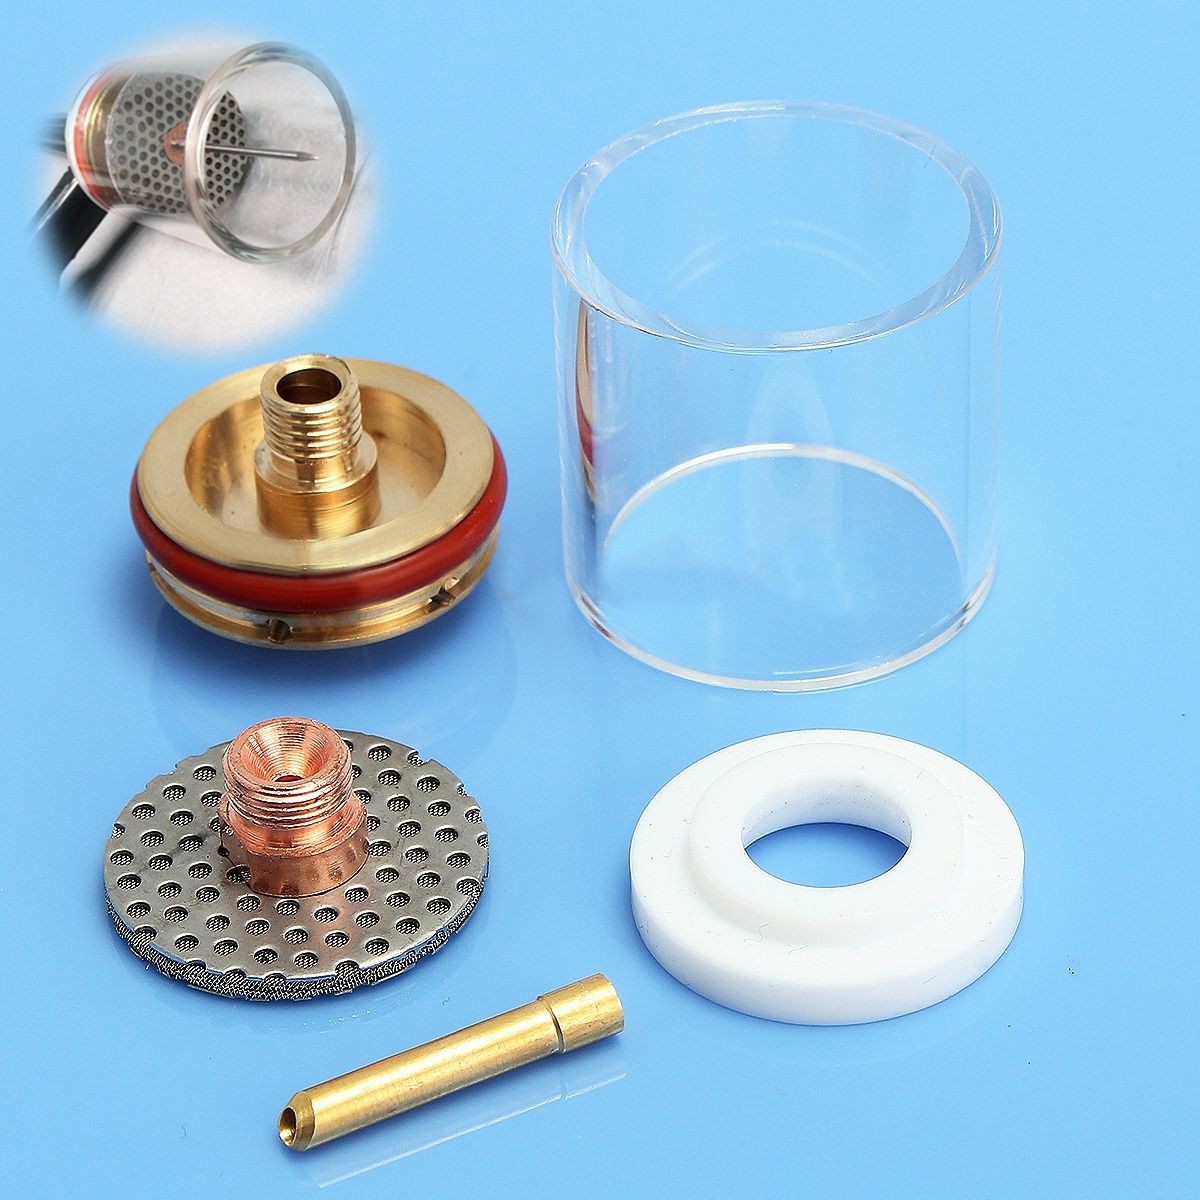 5pcs Welding Torch Nozzle Glass Cup Stubby Collet Gas Lens Insulator Kit Set For Tig WP-9/20/25 3/32 2.4 mm wp 17f sr 17f tig welding torch complete 17feet 5meter soldering iron flexible